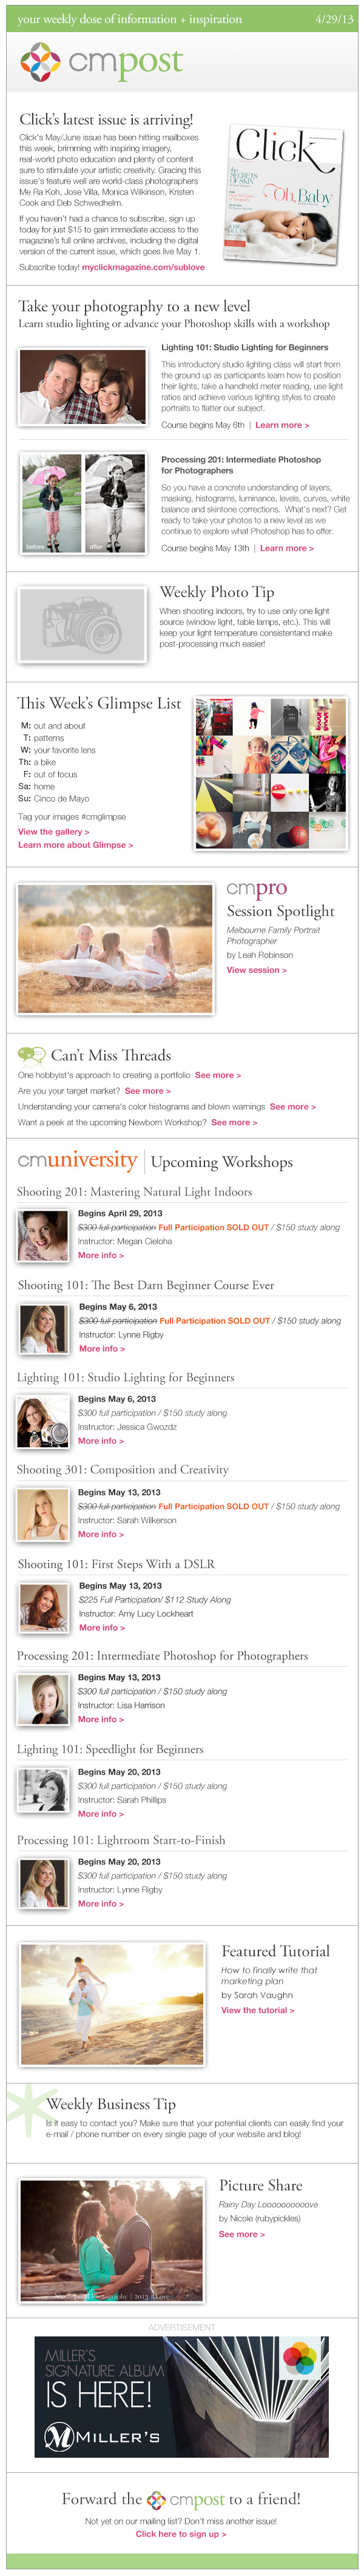 Click's latest issue, upcoming workshops, and creating a marketing plan